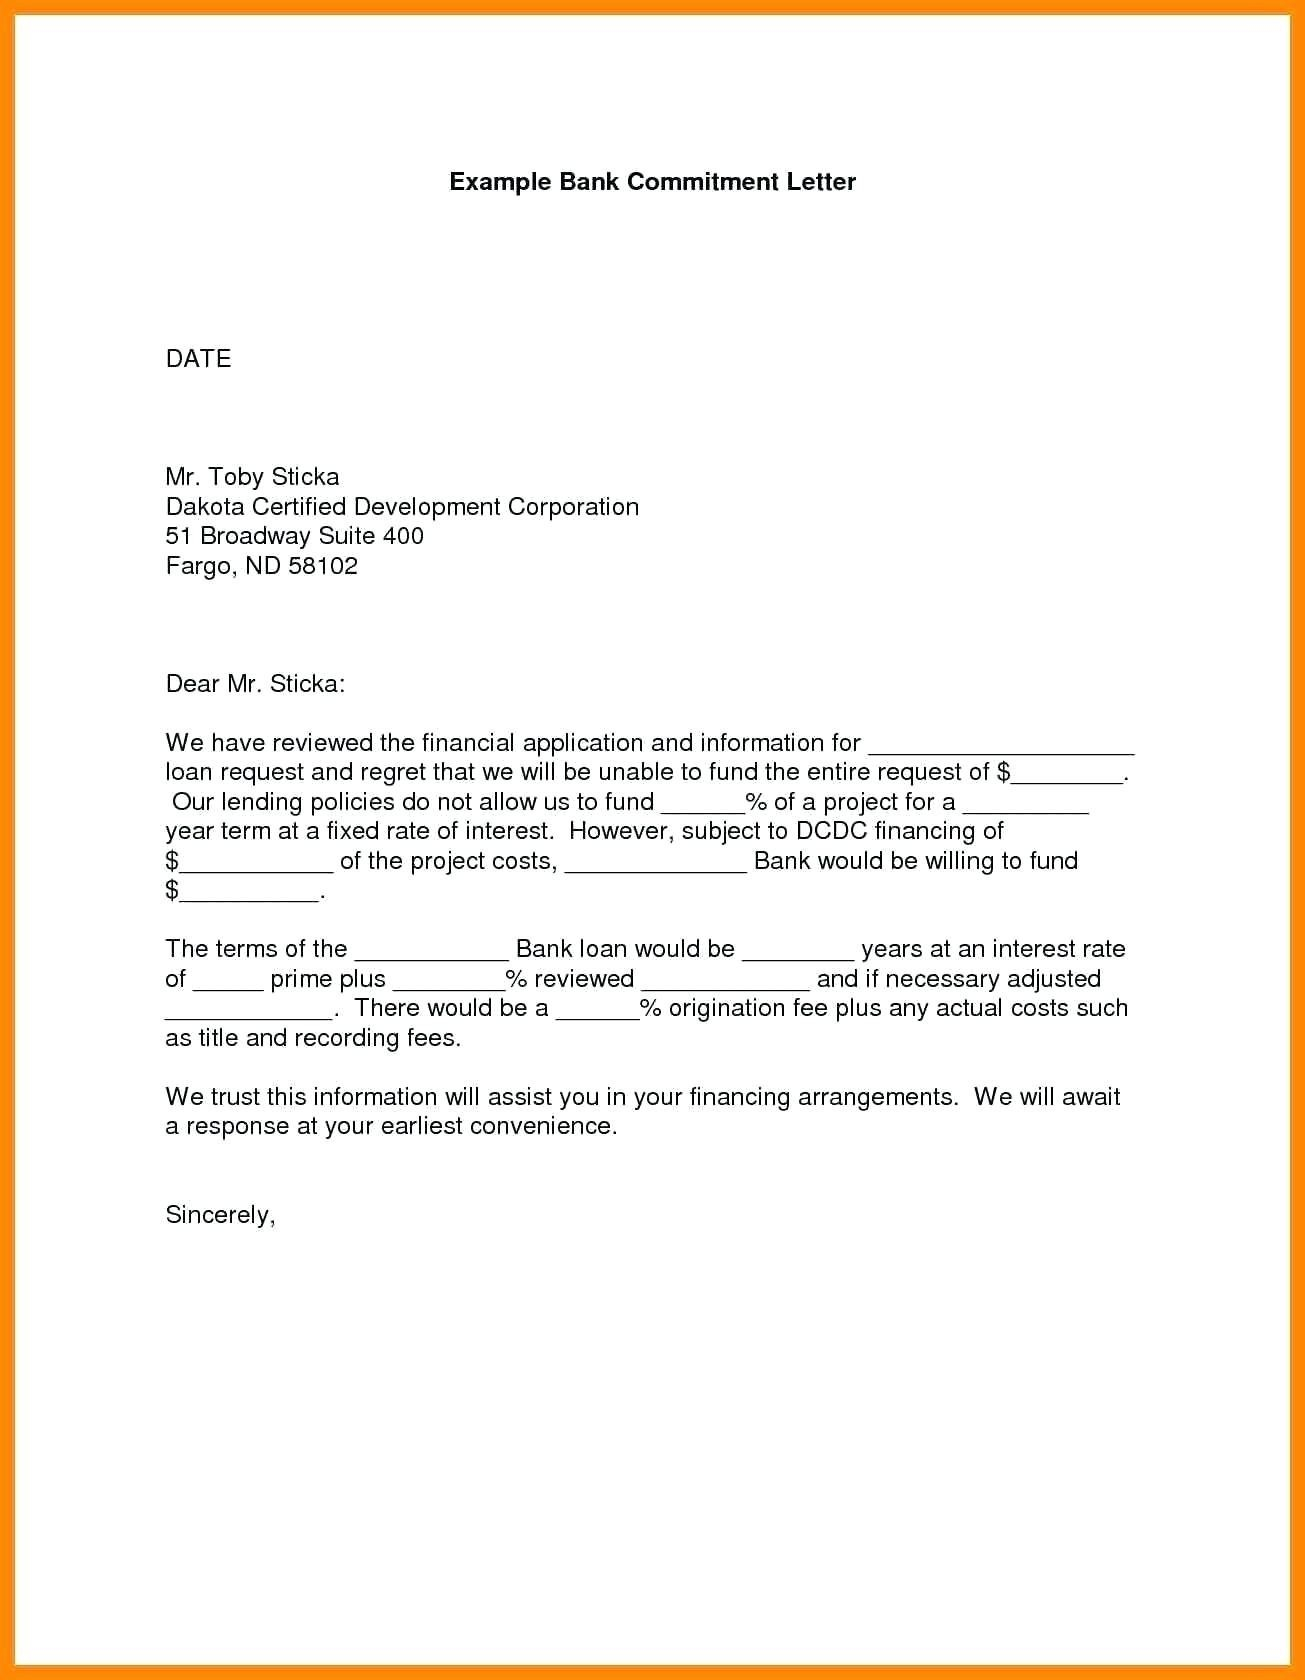 Mortgage Commitment Letter Template - Mitment Letter Sample Copy Employee Mitment Letter Sample Best